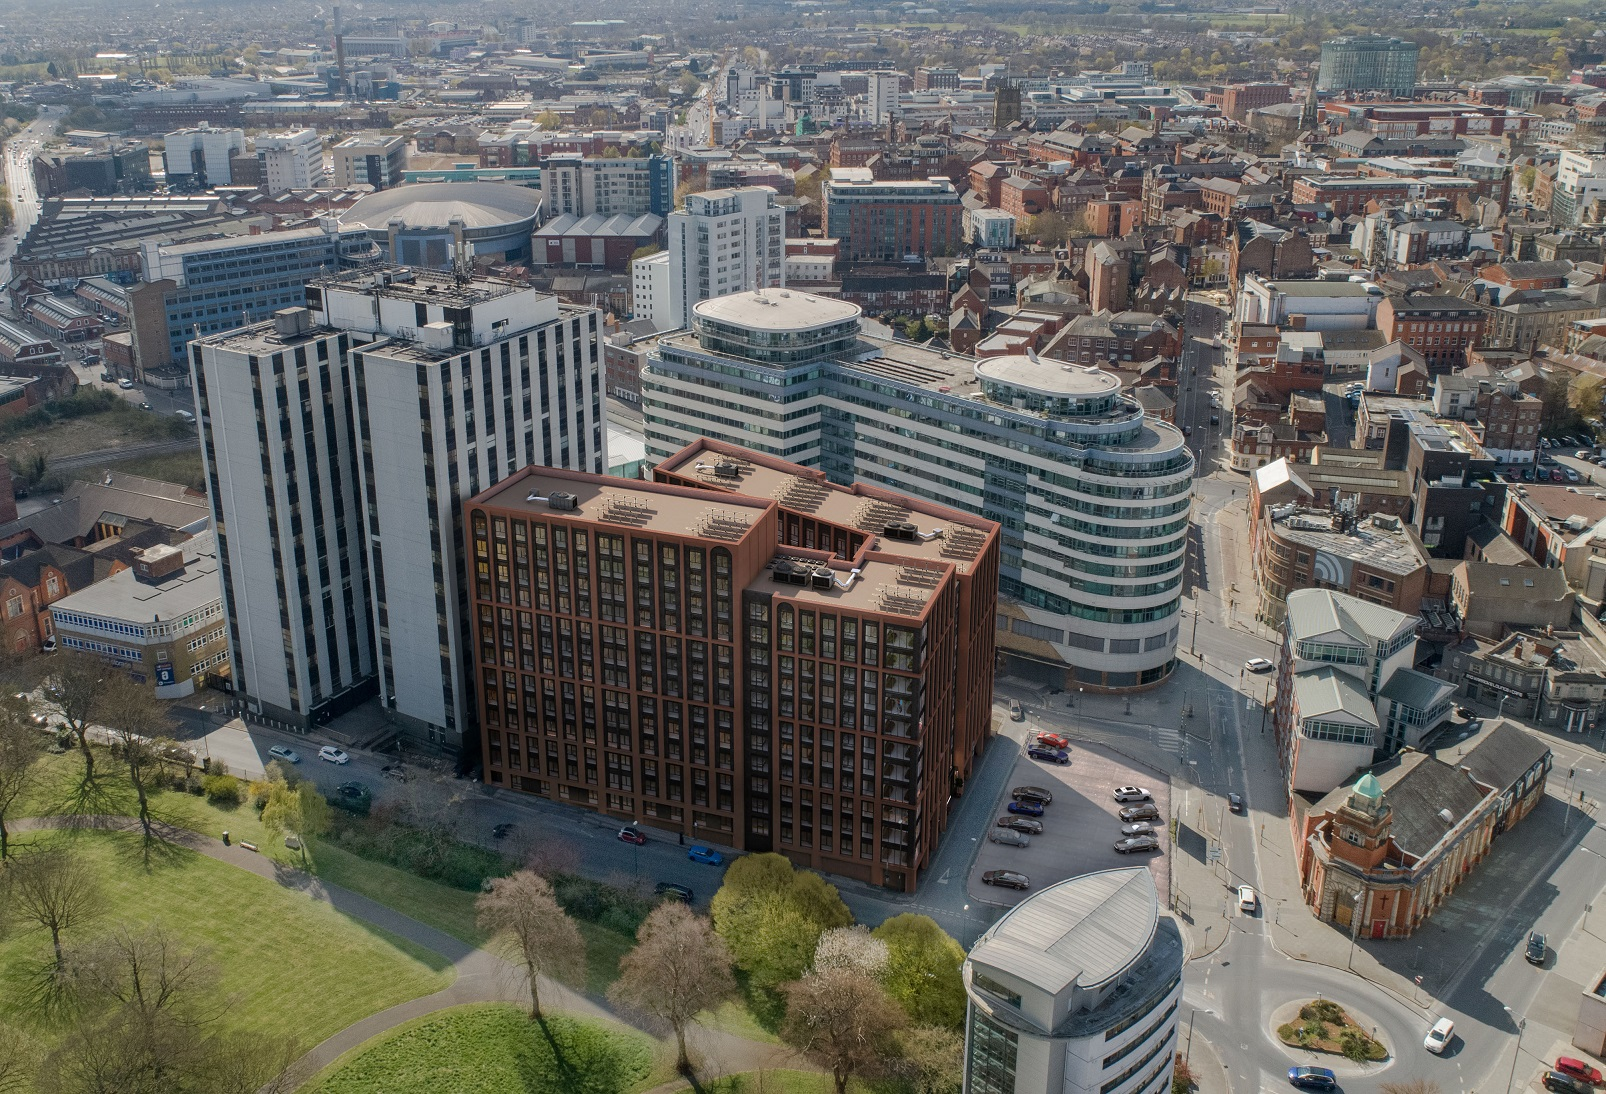 PLANS SUBMITTED FOR A 692-UNIT STUDENT LIVING SCHEME IN NOTTINGHAM